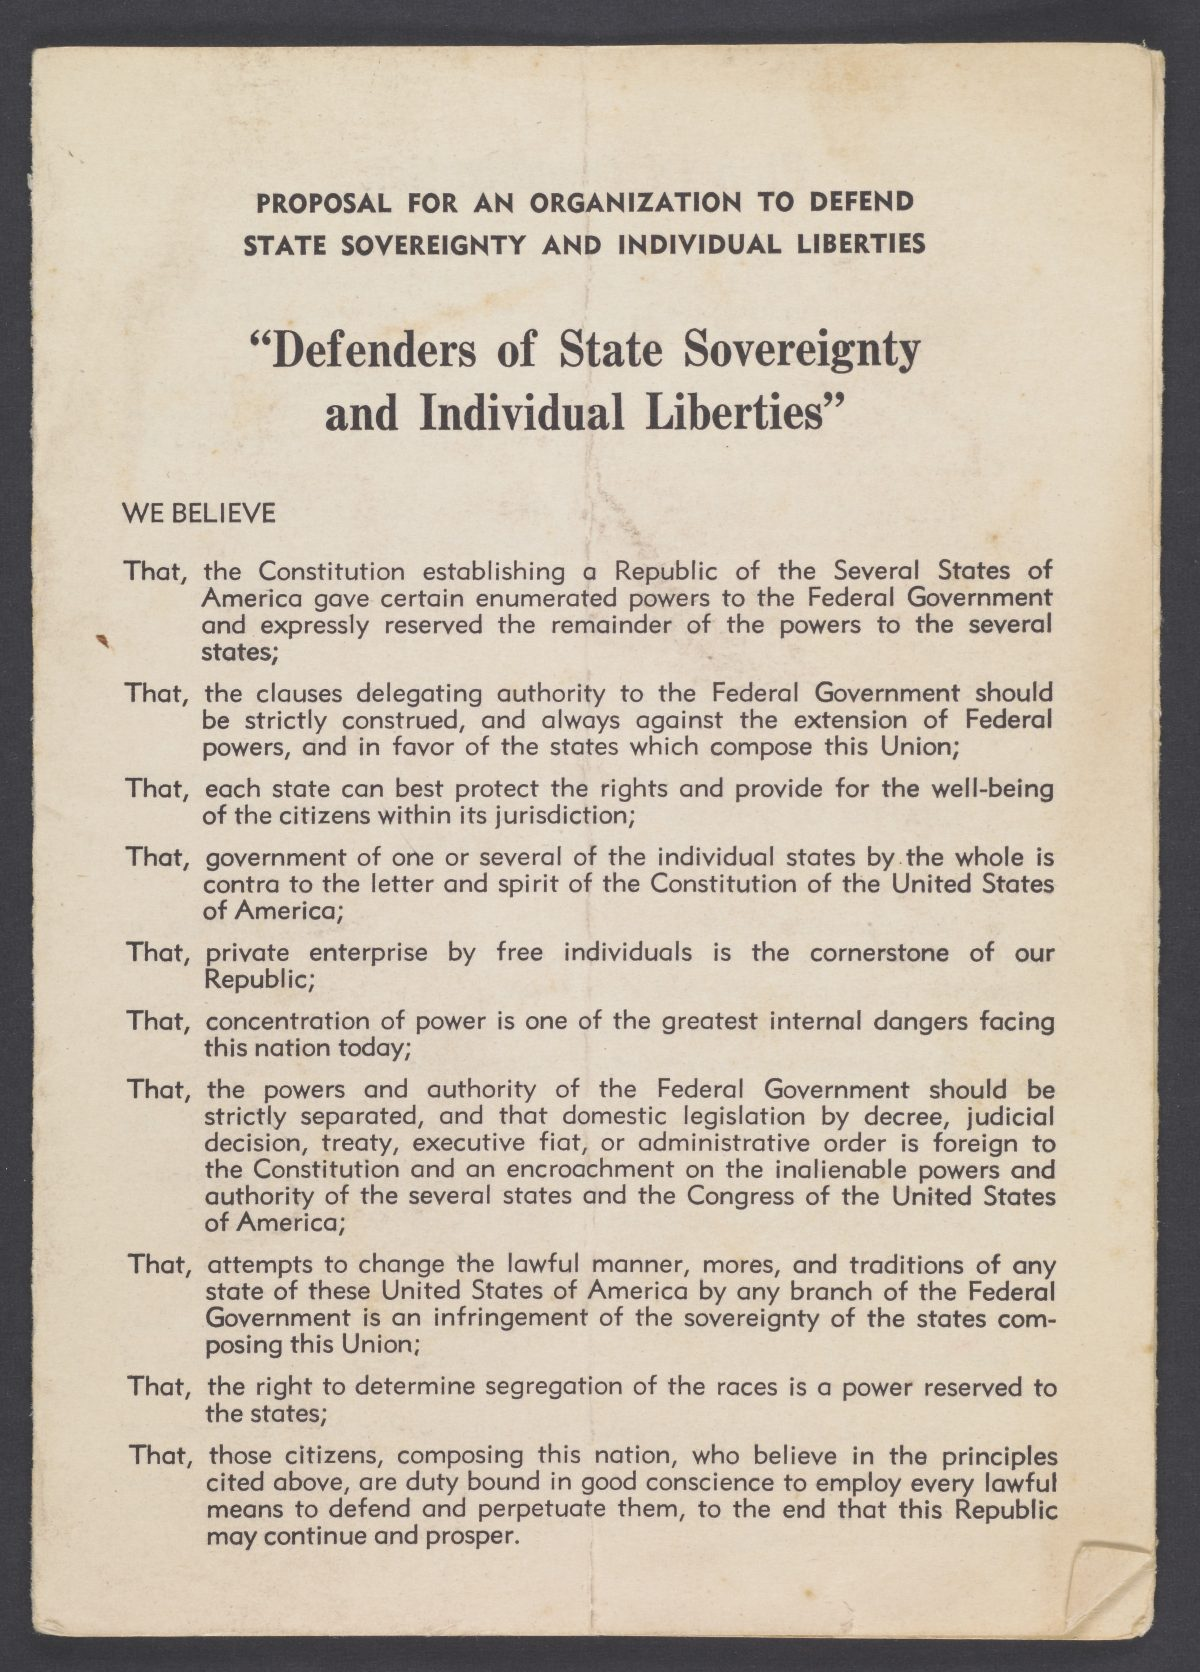 """Proposal for an Organization to Defend State Sovereignty and Individual Liberties: """"Defenders of State Sovereignty and Individual Liberties"""""""